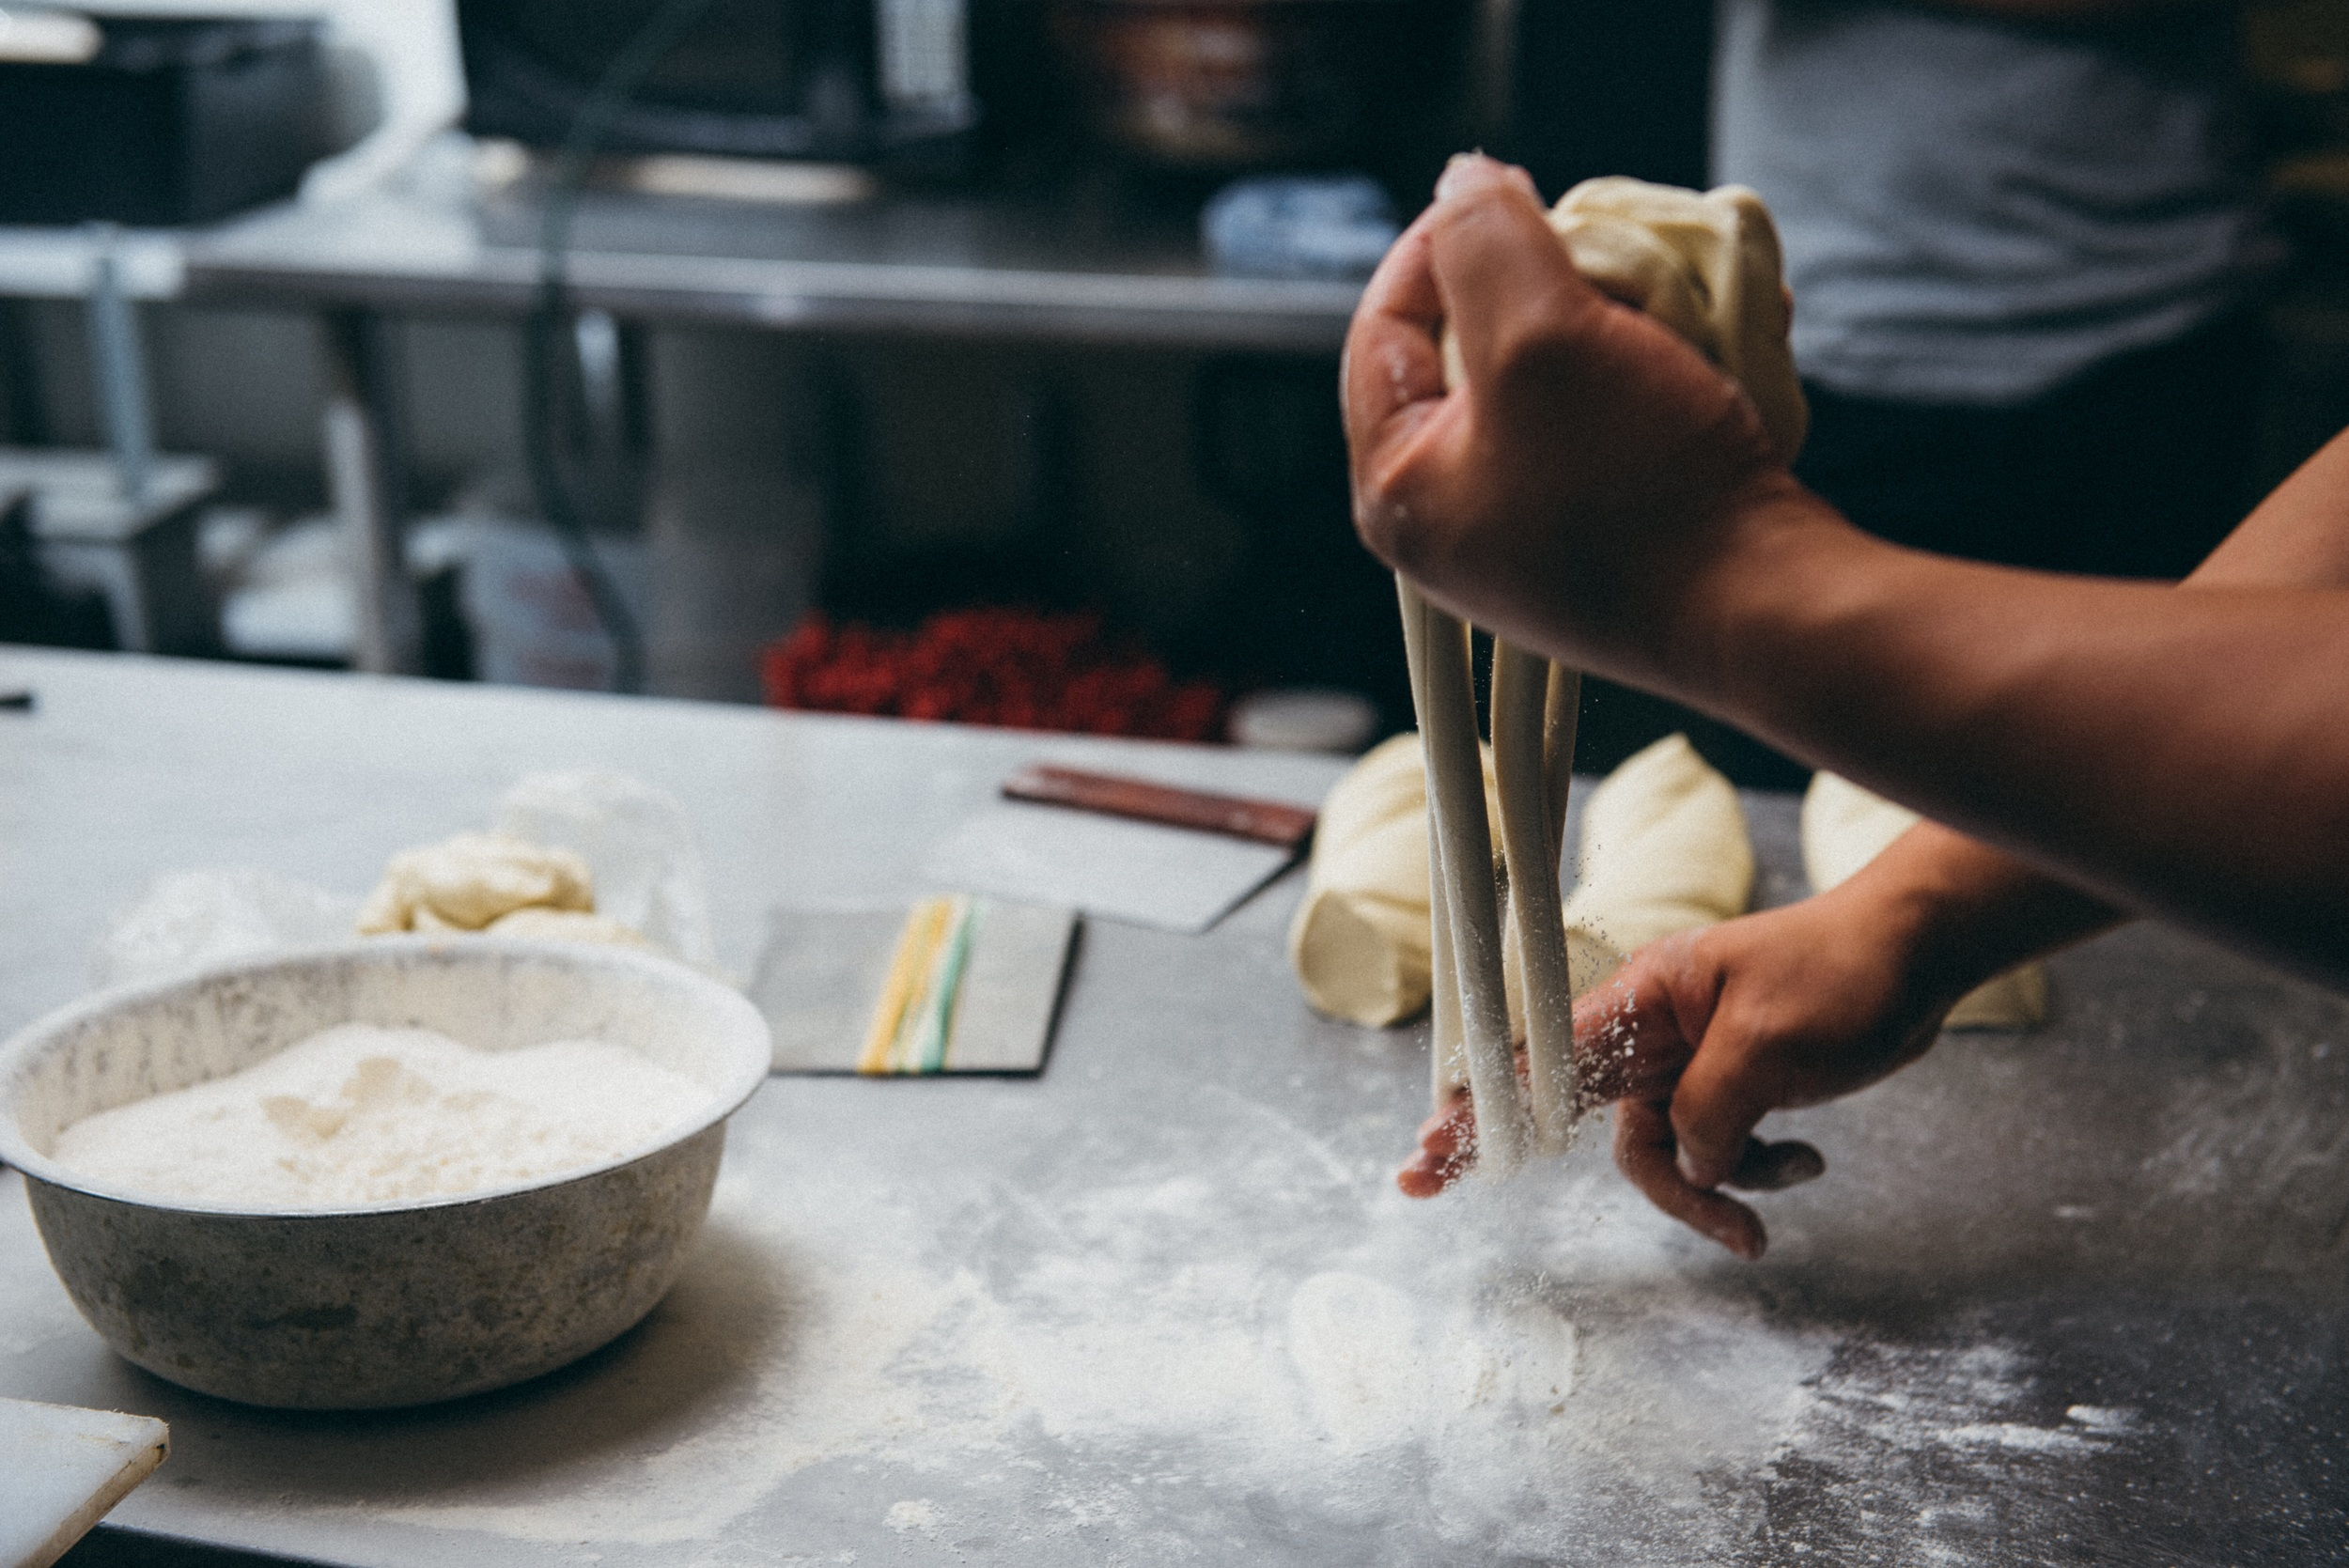 12. Jacob's strokes are precise and betray years of practice perfecting the art.  The speed of this process becomes evident, even in a photograph as the flour explodes off of the dough.